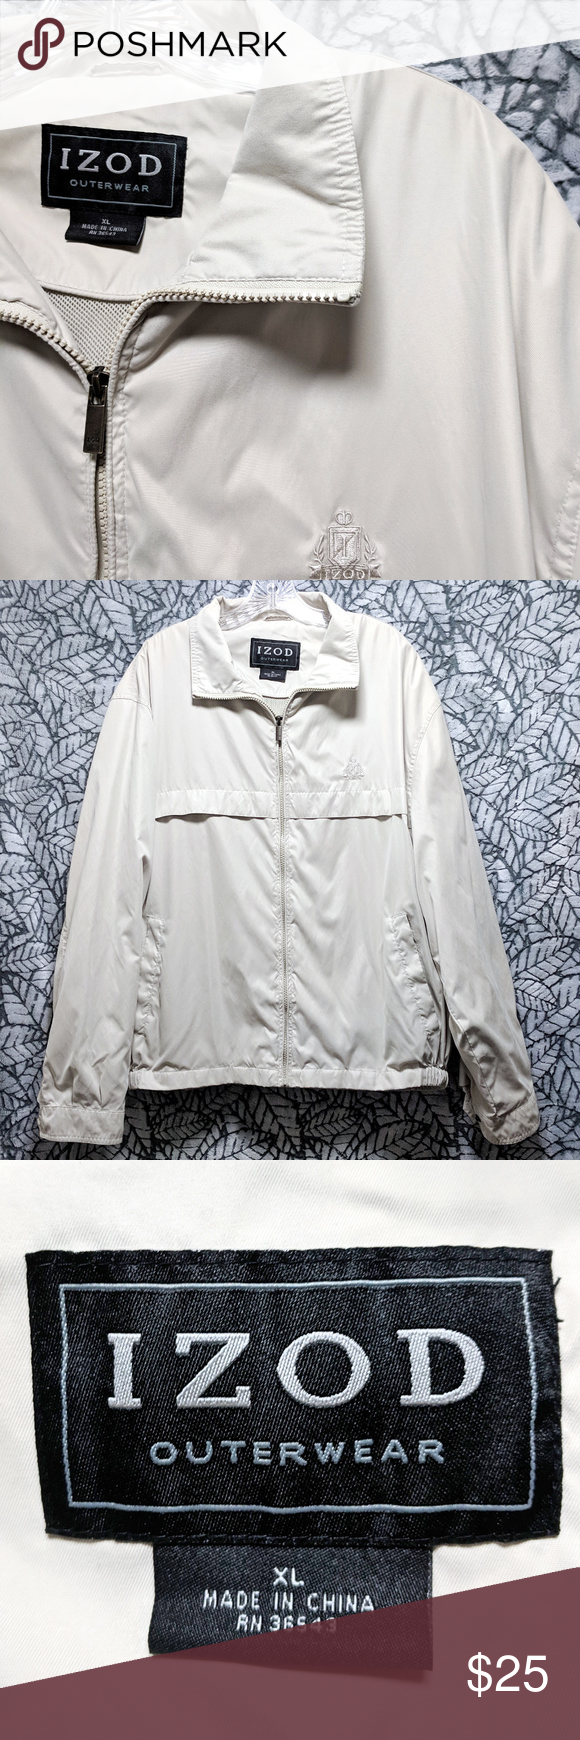 Izod Crest Ivory Soft Full Zip Extra Windbreaker Excellent Condition Brand Izod Crest On Front Color Ivory E Clothes Design Windbreaker Fashion [ 1740 x 580 Pixel ]